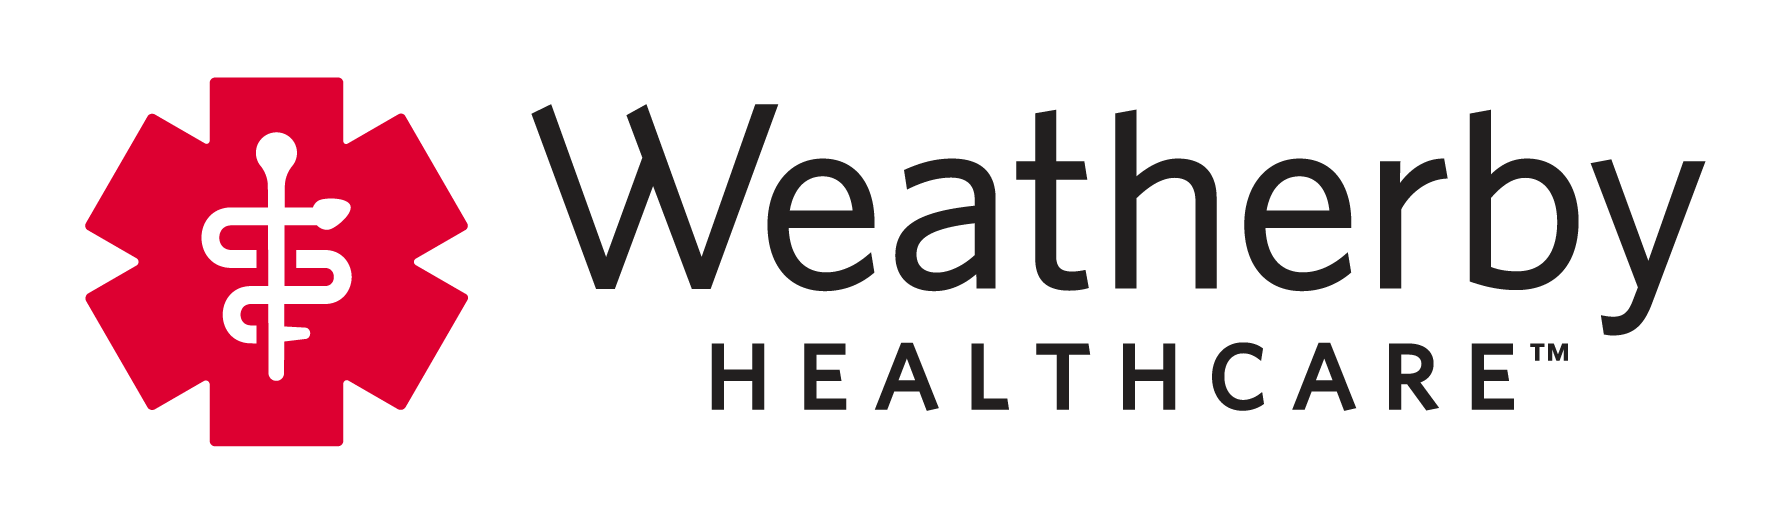 Weatherby Healthcare.png